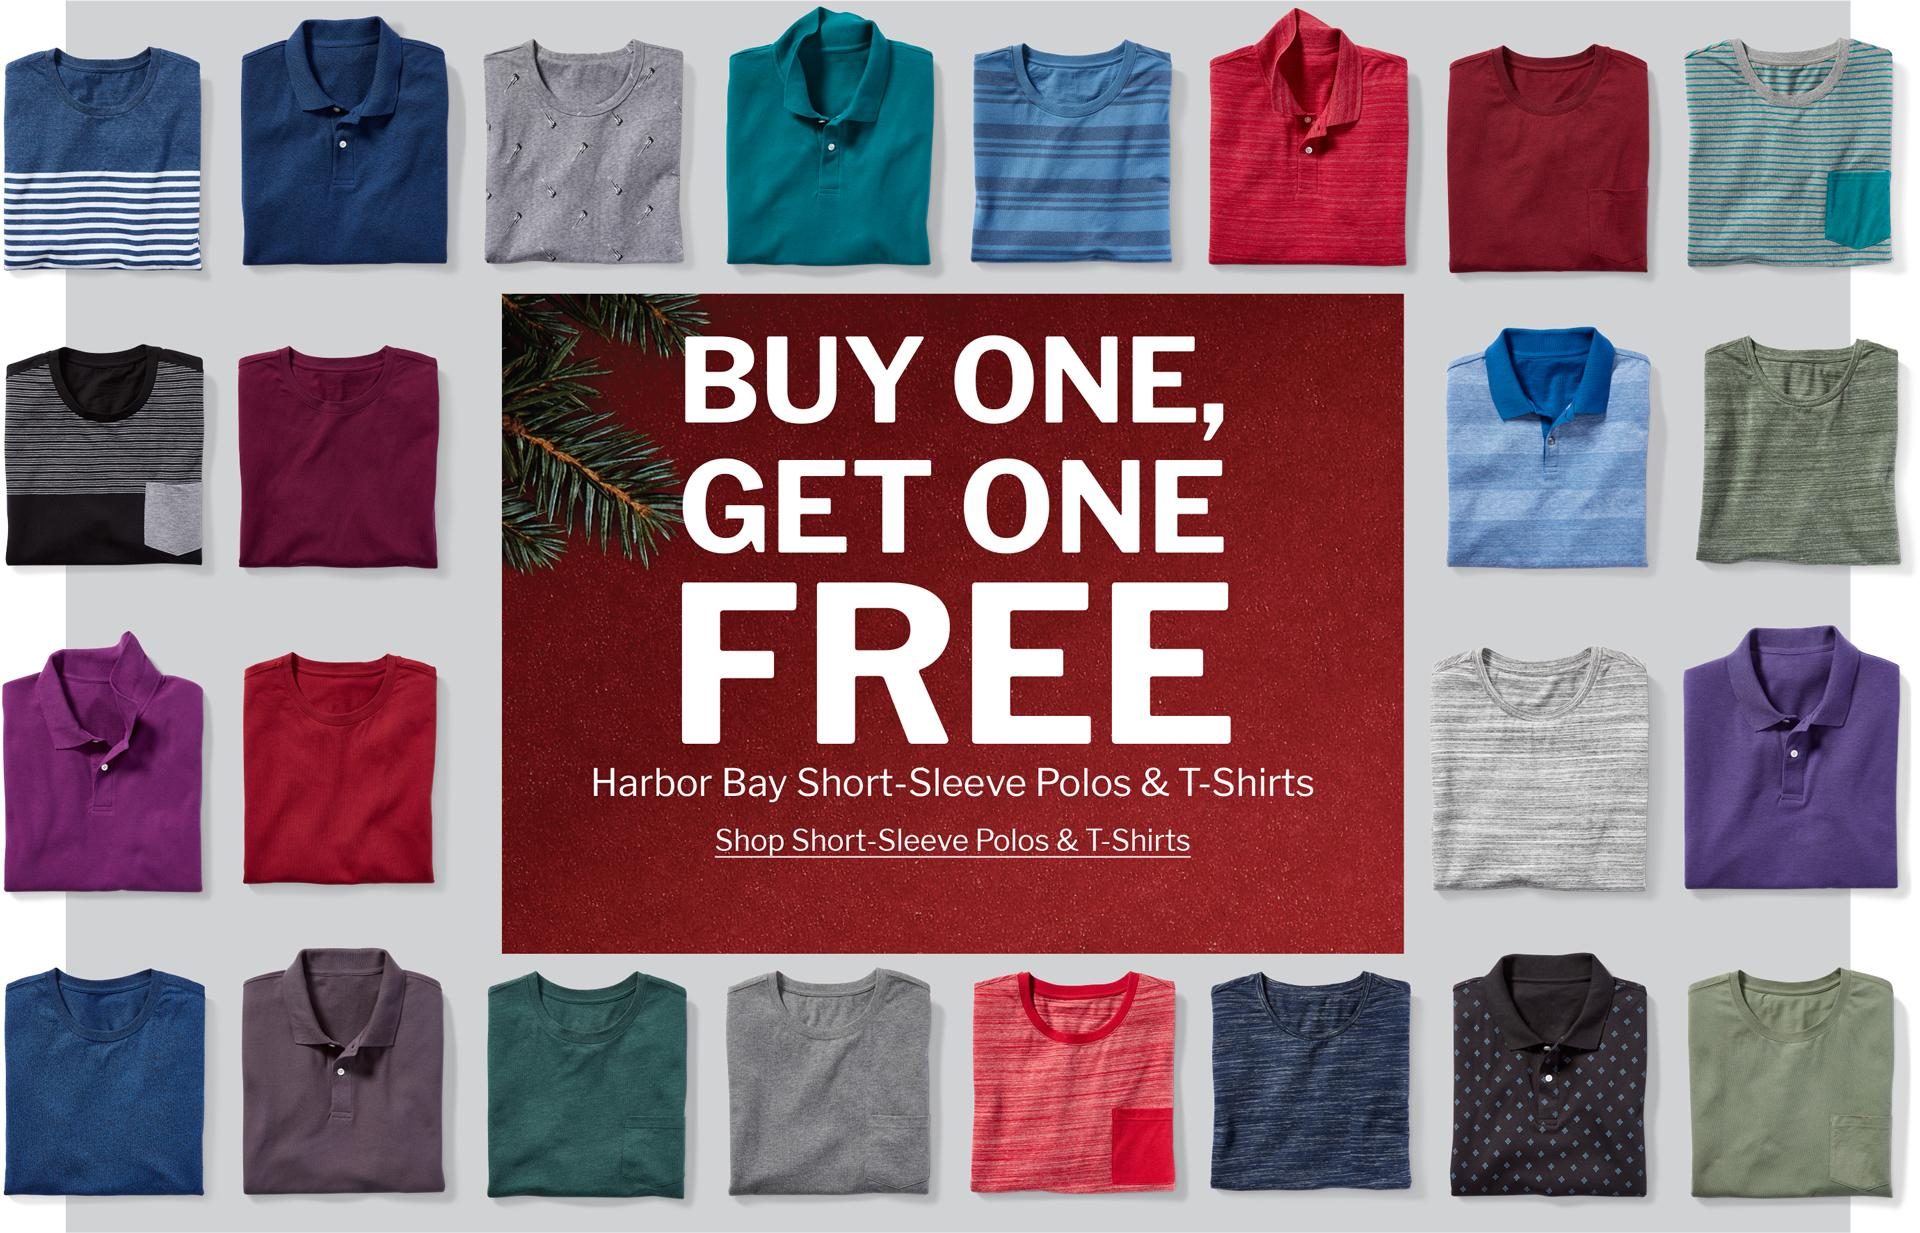 BUY ONE, GET ONE FREE | HARBOR BAY SHORT-SLEEVE POLOS & T-SHIRTS | SHOP SHORT-SLEEVE POLOS & T-SHIRTS